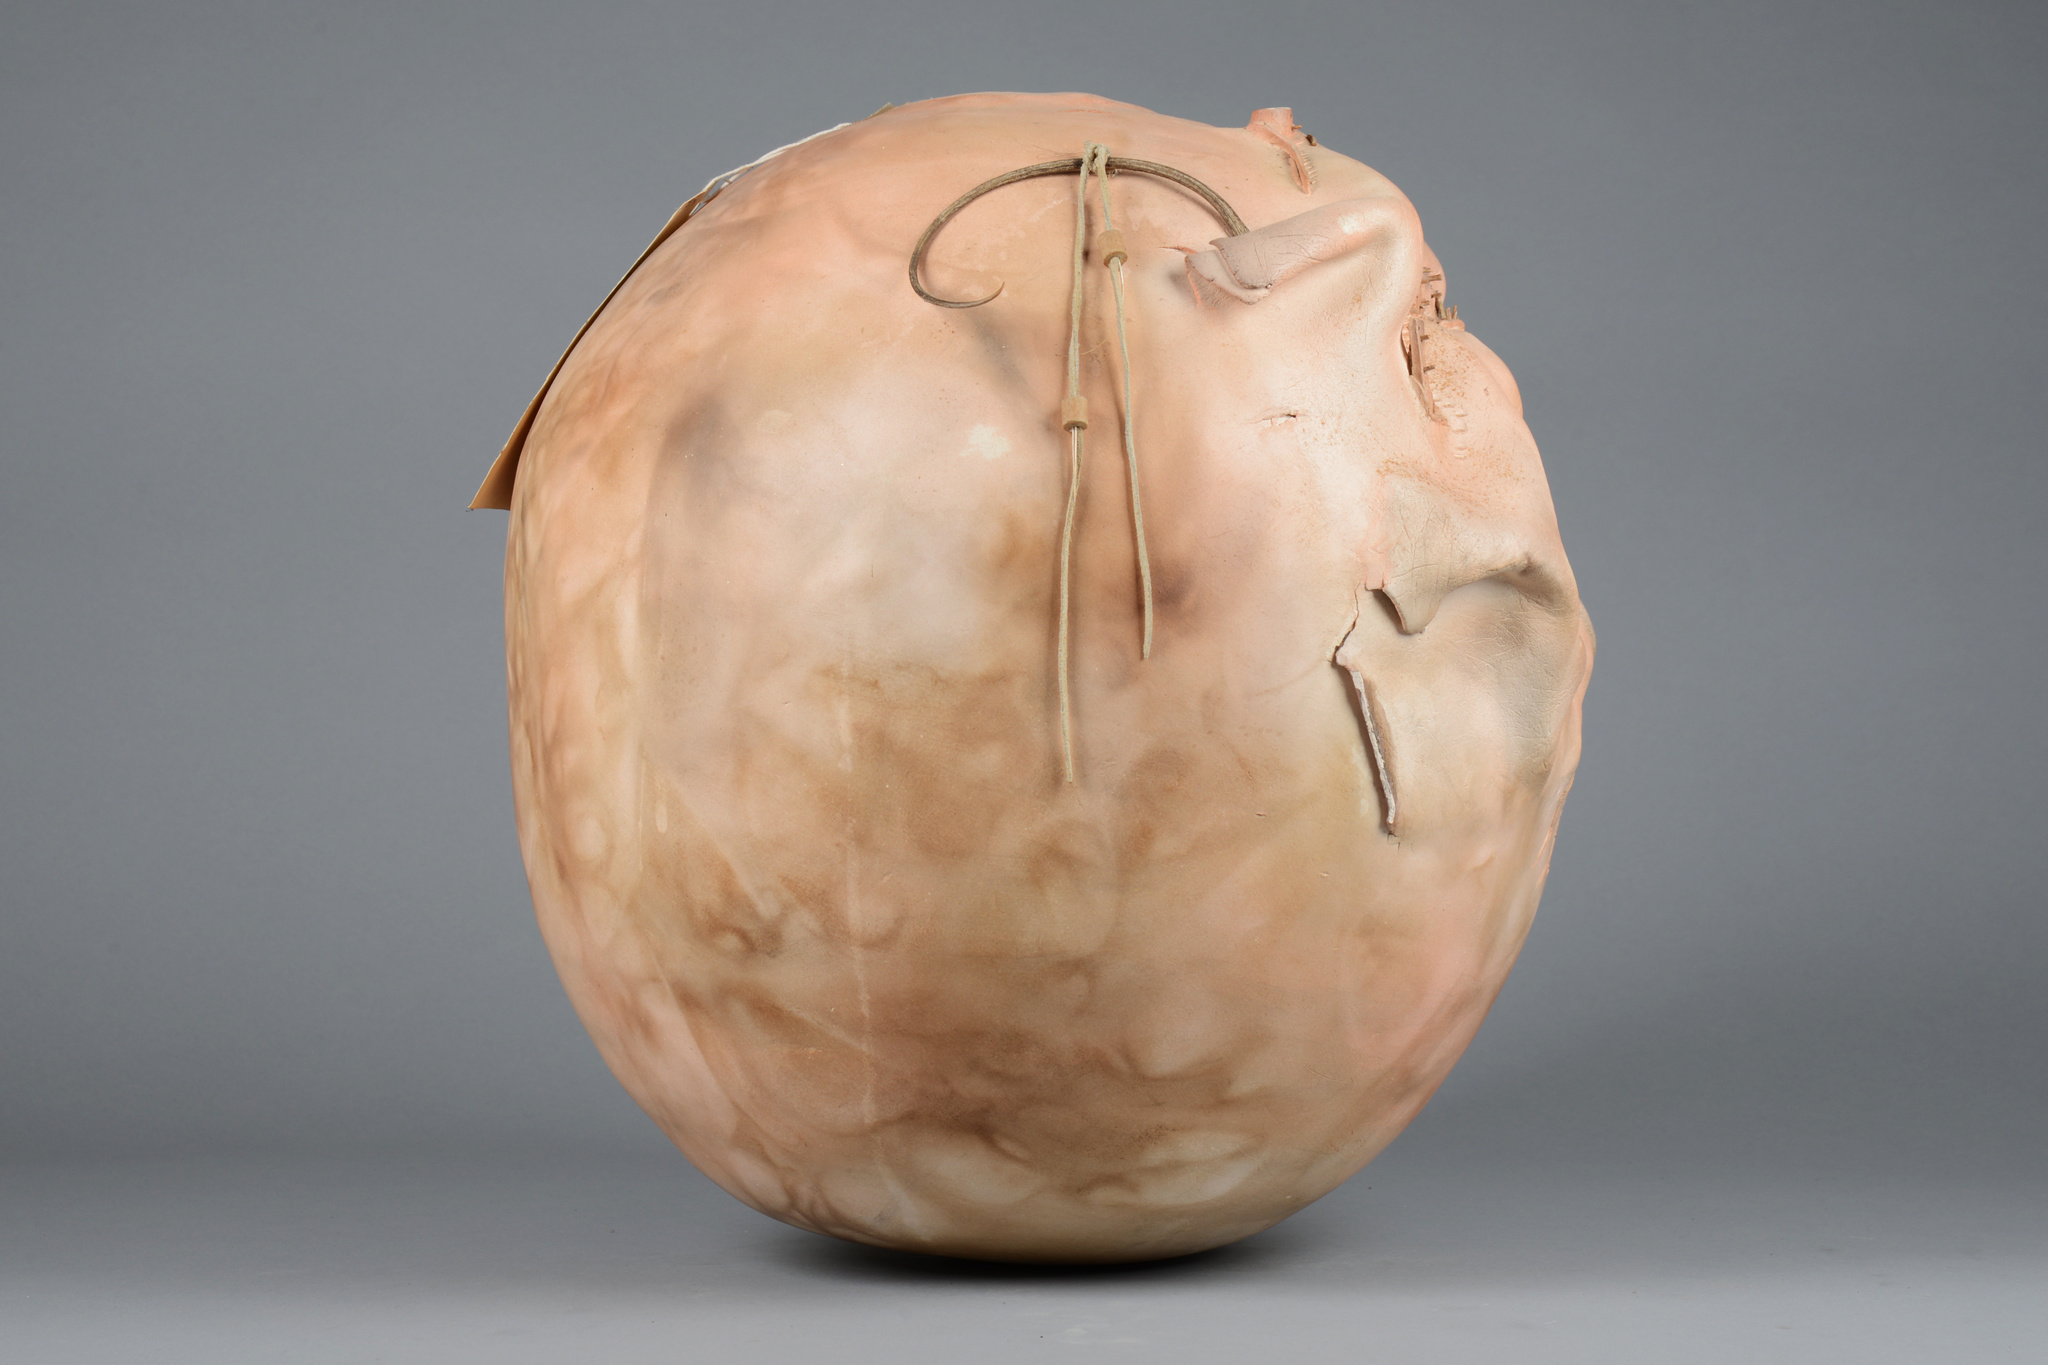 The Anasazi Pot